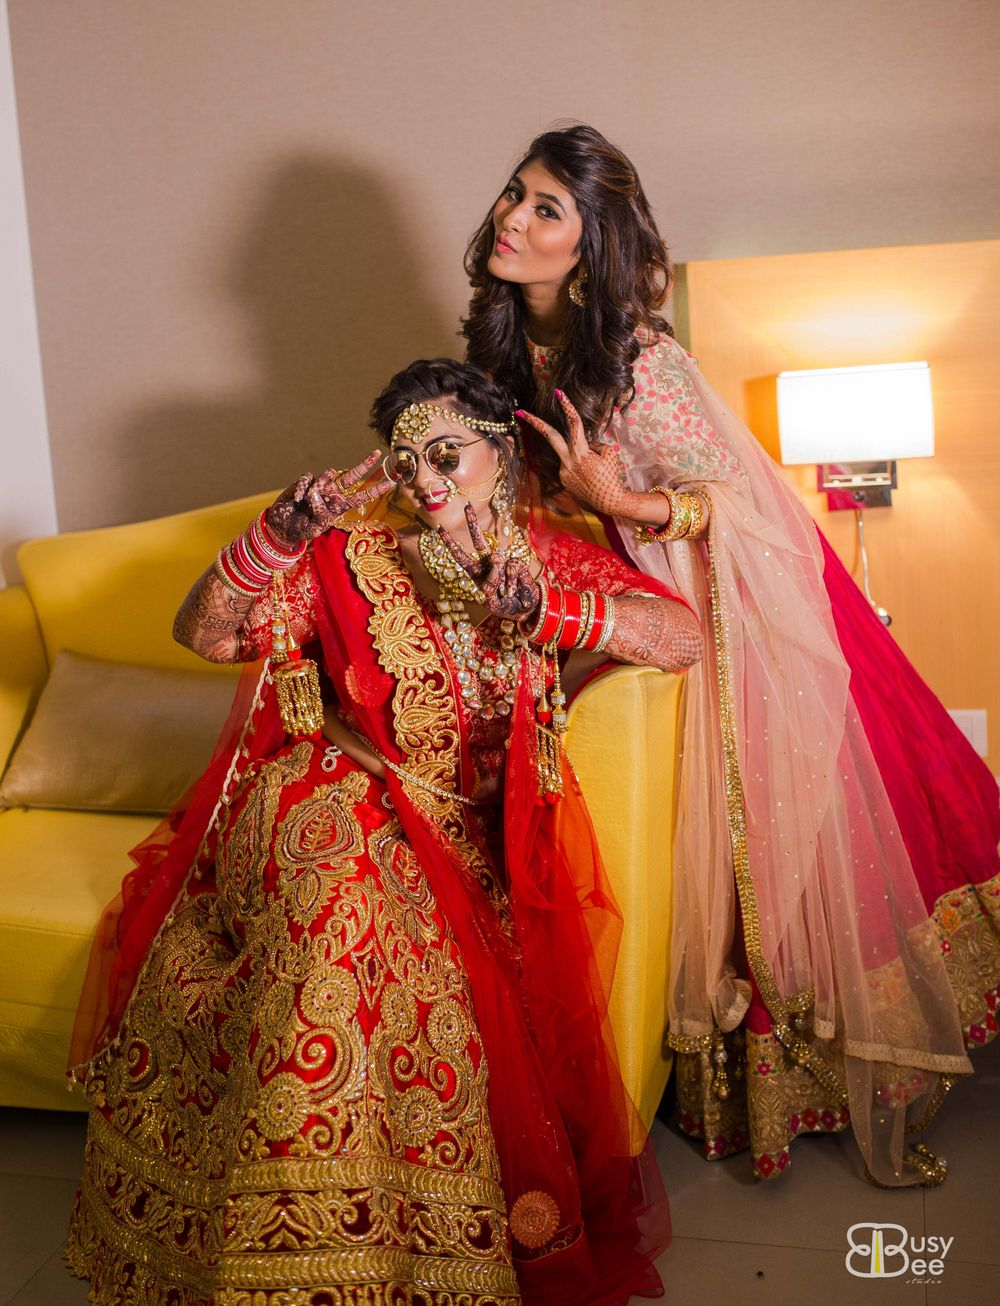 Photo From Dimple & Kumar Wedding - By Busy Bee Studio